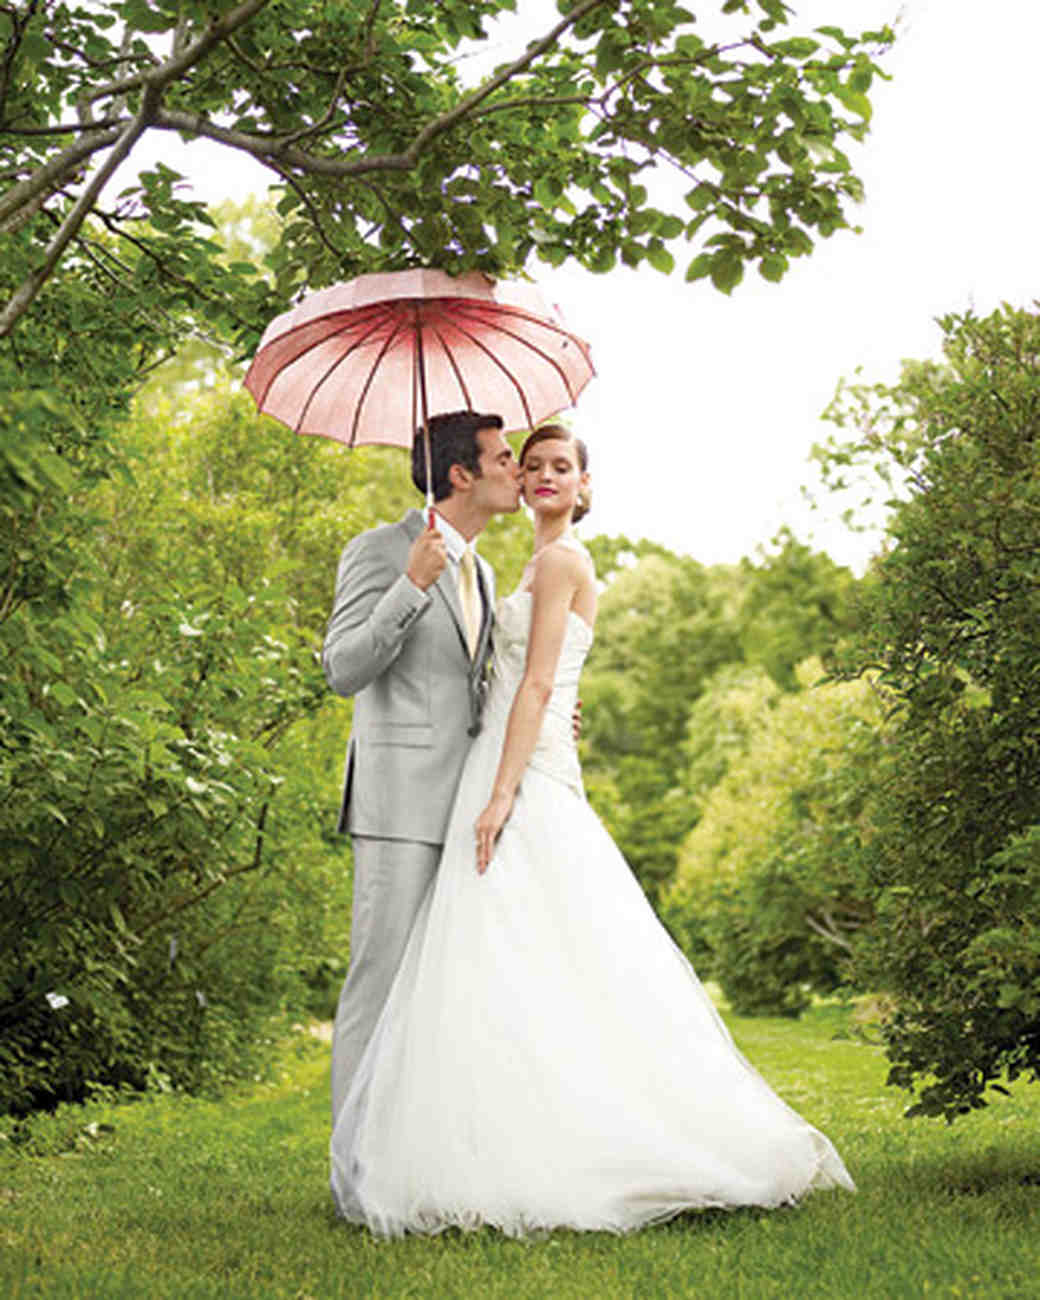 Outdoor Wedding Pictures: Perfect Gowns For An Outdoor Wedding